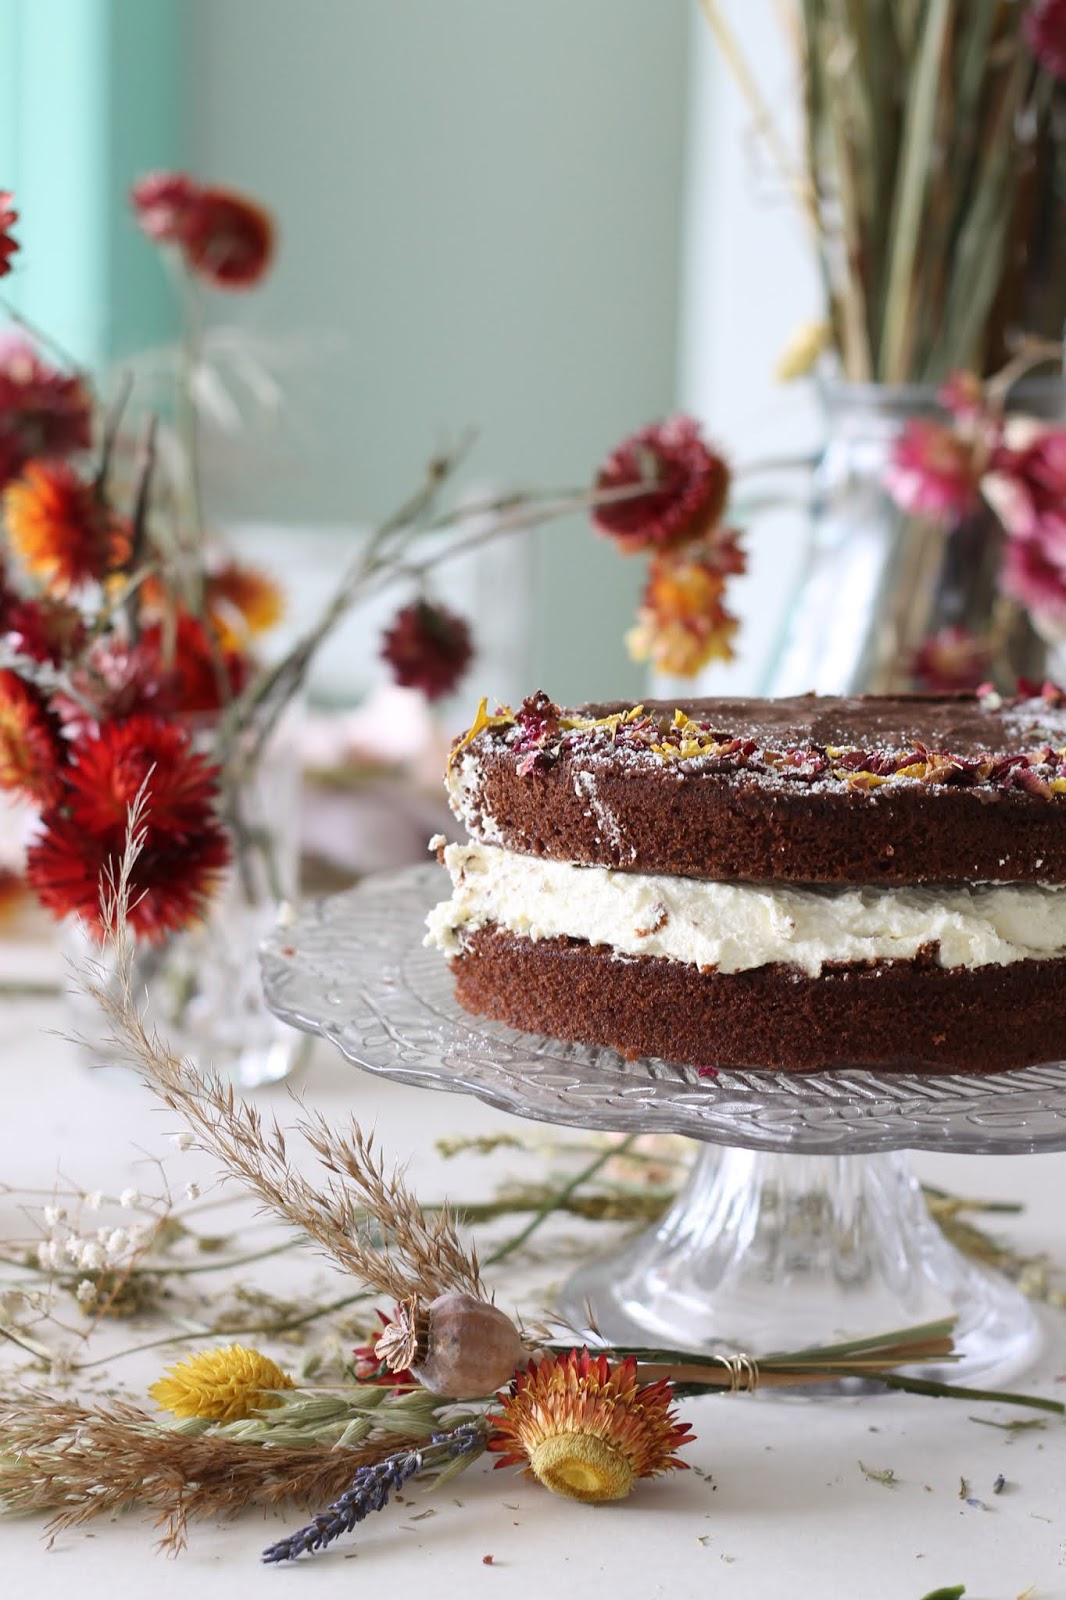 Simple Chocolate Cake with Dried Flower Decorations